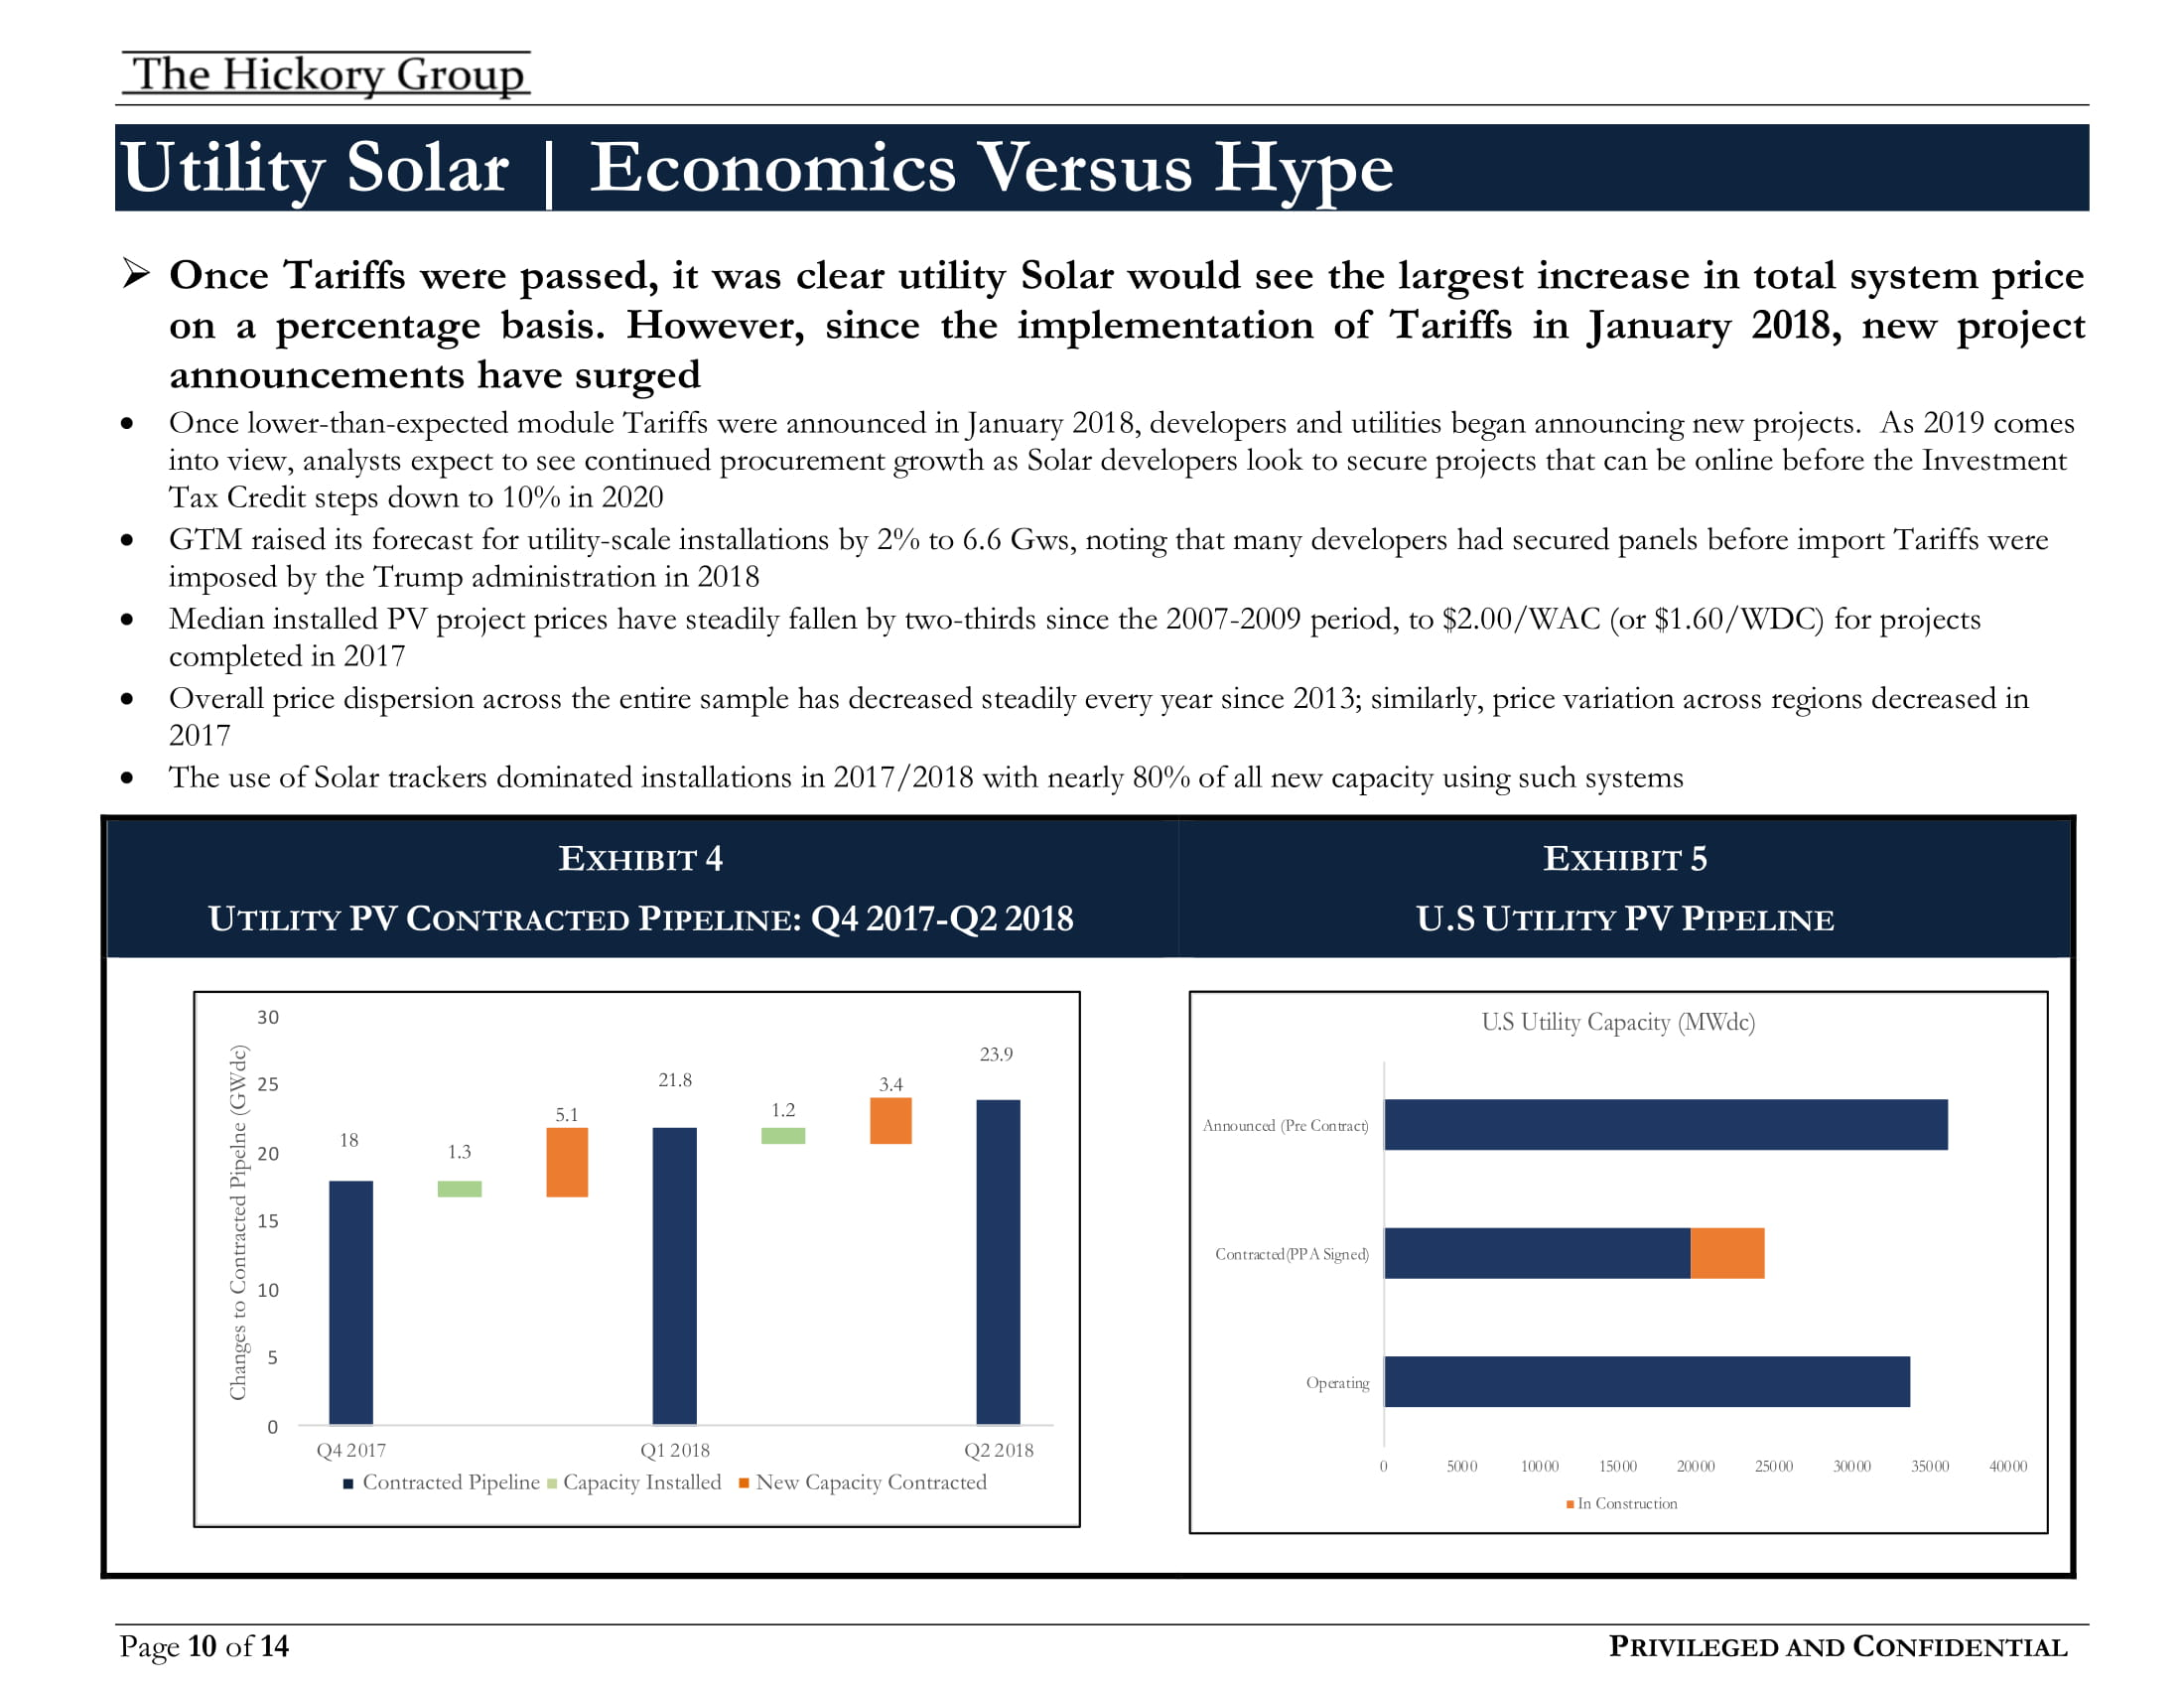 FINAL_THG Solar Flash Report FY18 Q3 (October 2018) Privileged and Confidential[1][1]-10.jpg